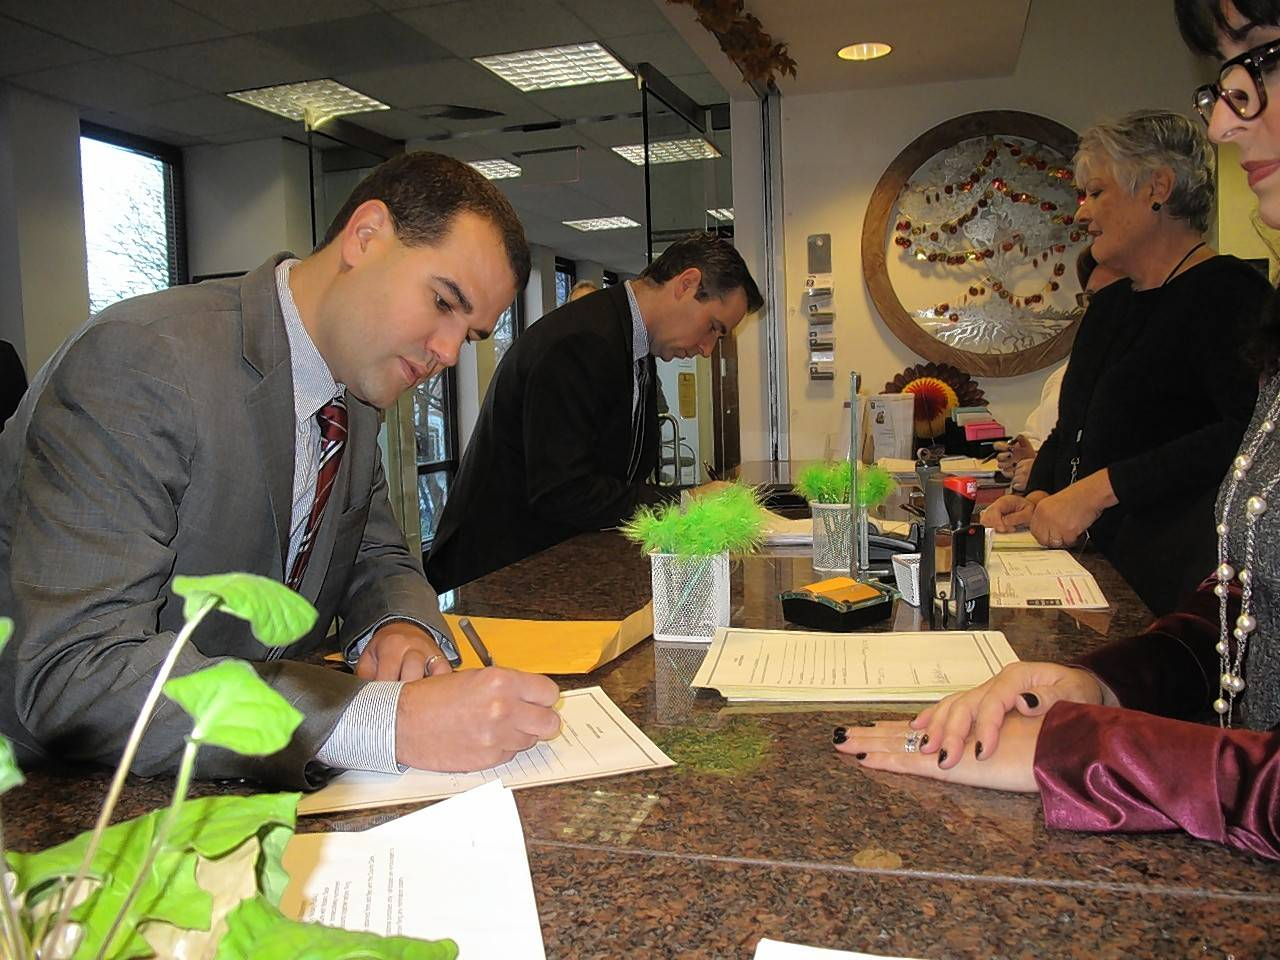 Mike Isaac, left, and Naperville City Council member Kevin Coyne file nominating petitions Monday morning to seek one of four open seats on the council in the spring 2017 election.